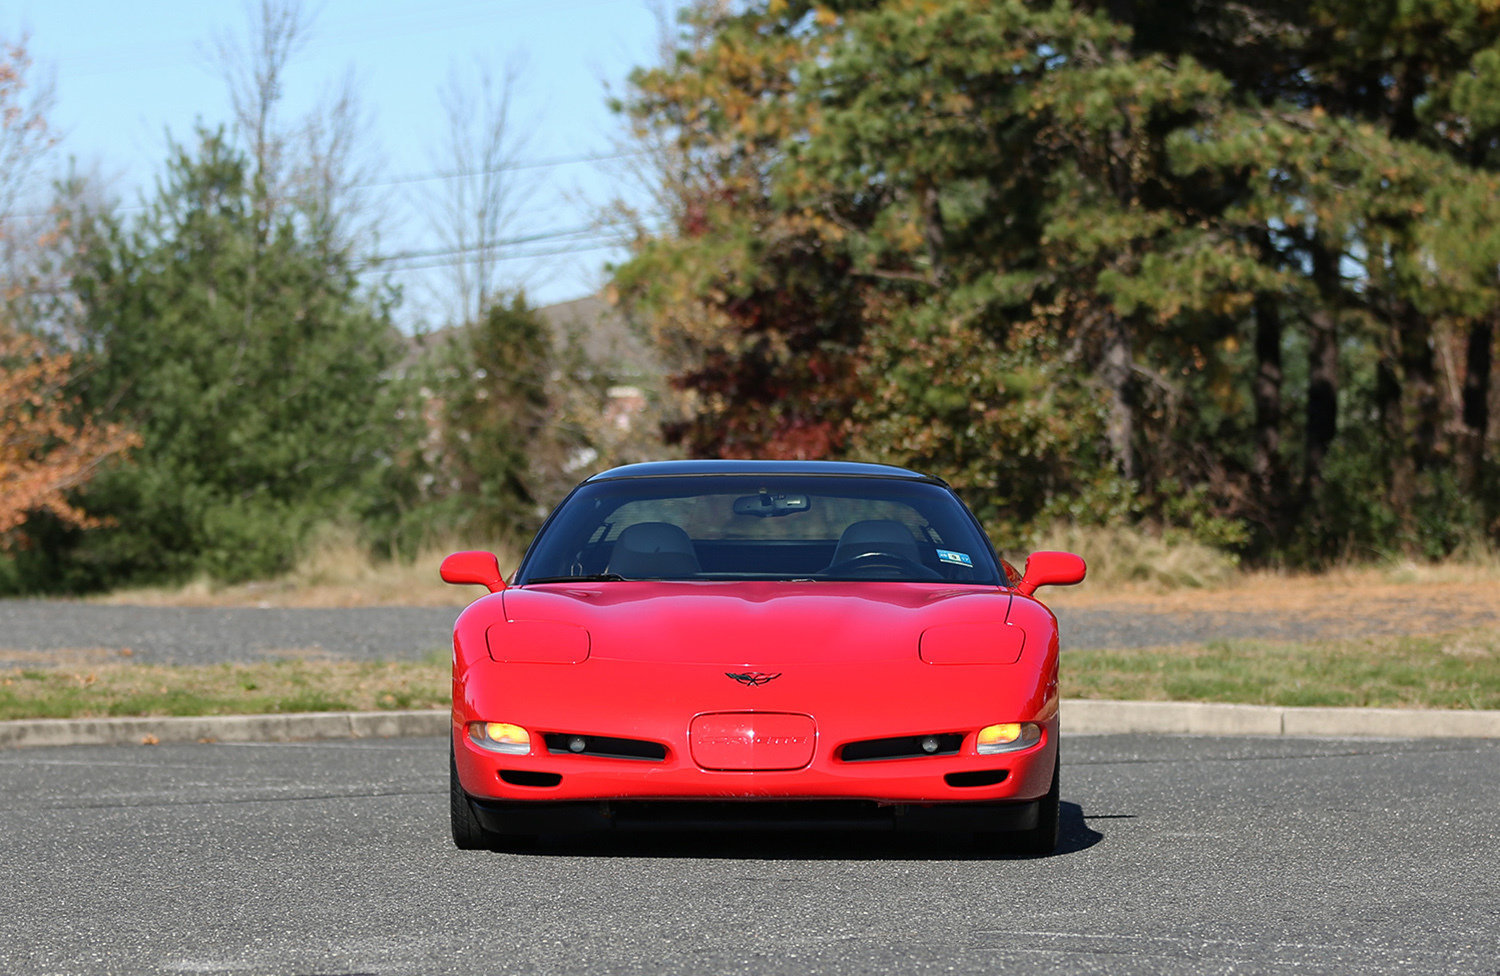 F Ed D Hd Chevrolet Corvette on 1999 Corvette Ls1 Engine Specs